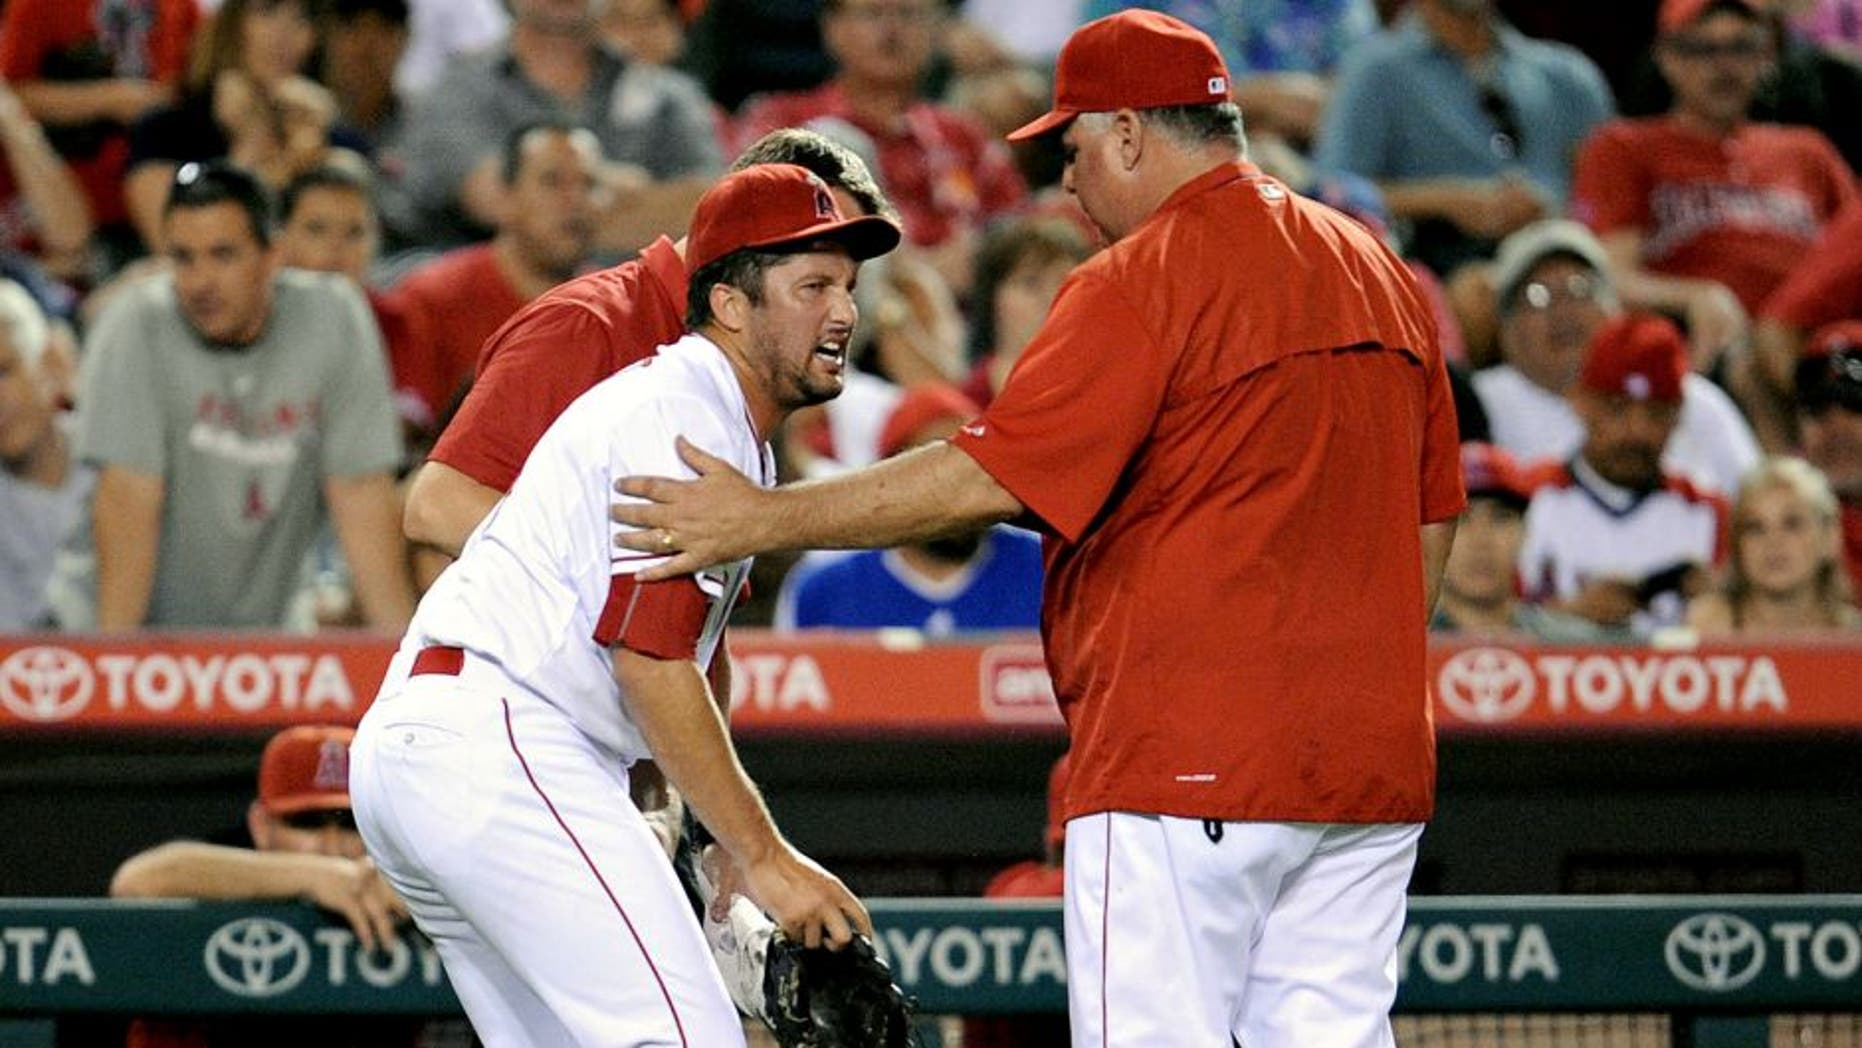 September 26, 2015; Anaheim, CA, USA; Los Angeles Angels relief pitcher Huston Street (16) reacts as he is helped by the team trainer and manager Mike Scioscia (14) after suffering an apparent injury in the ninth inning against the Seattle Mariners at Angel Stadium of Anaheim. Mandatory Credit: Gary A. Vasquez-USA TODAY Sports